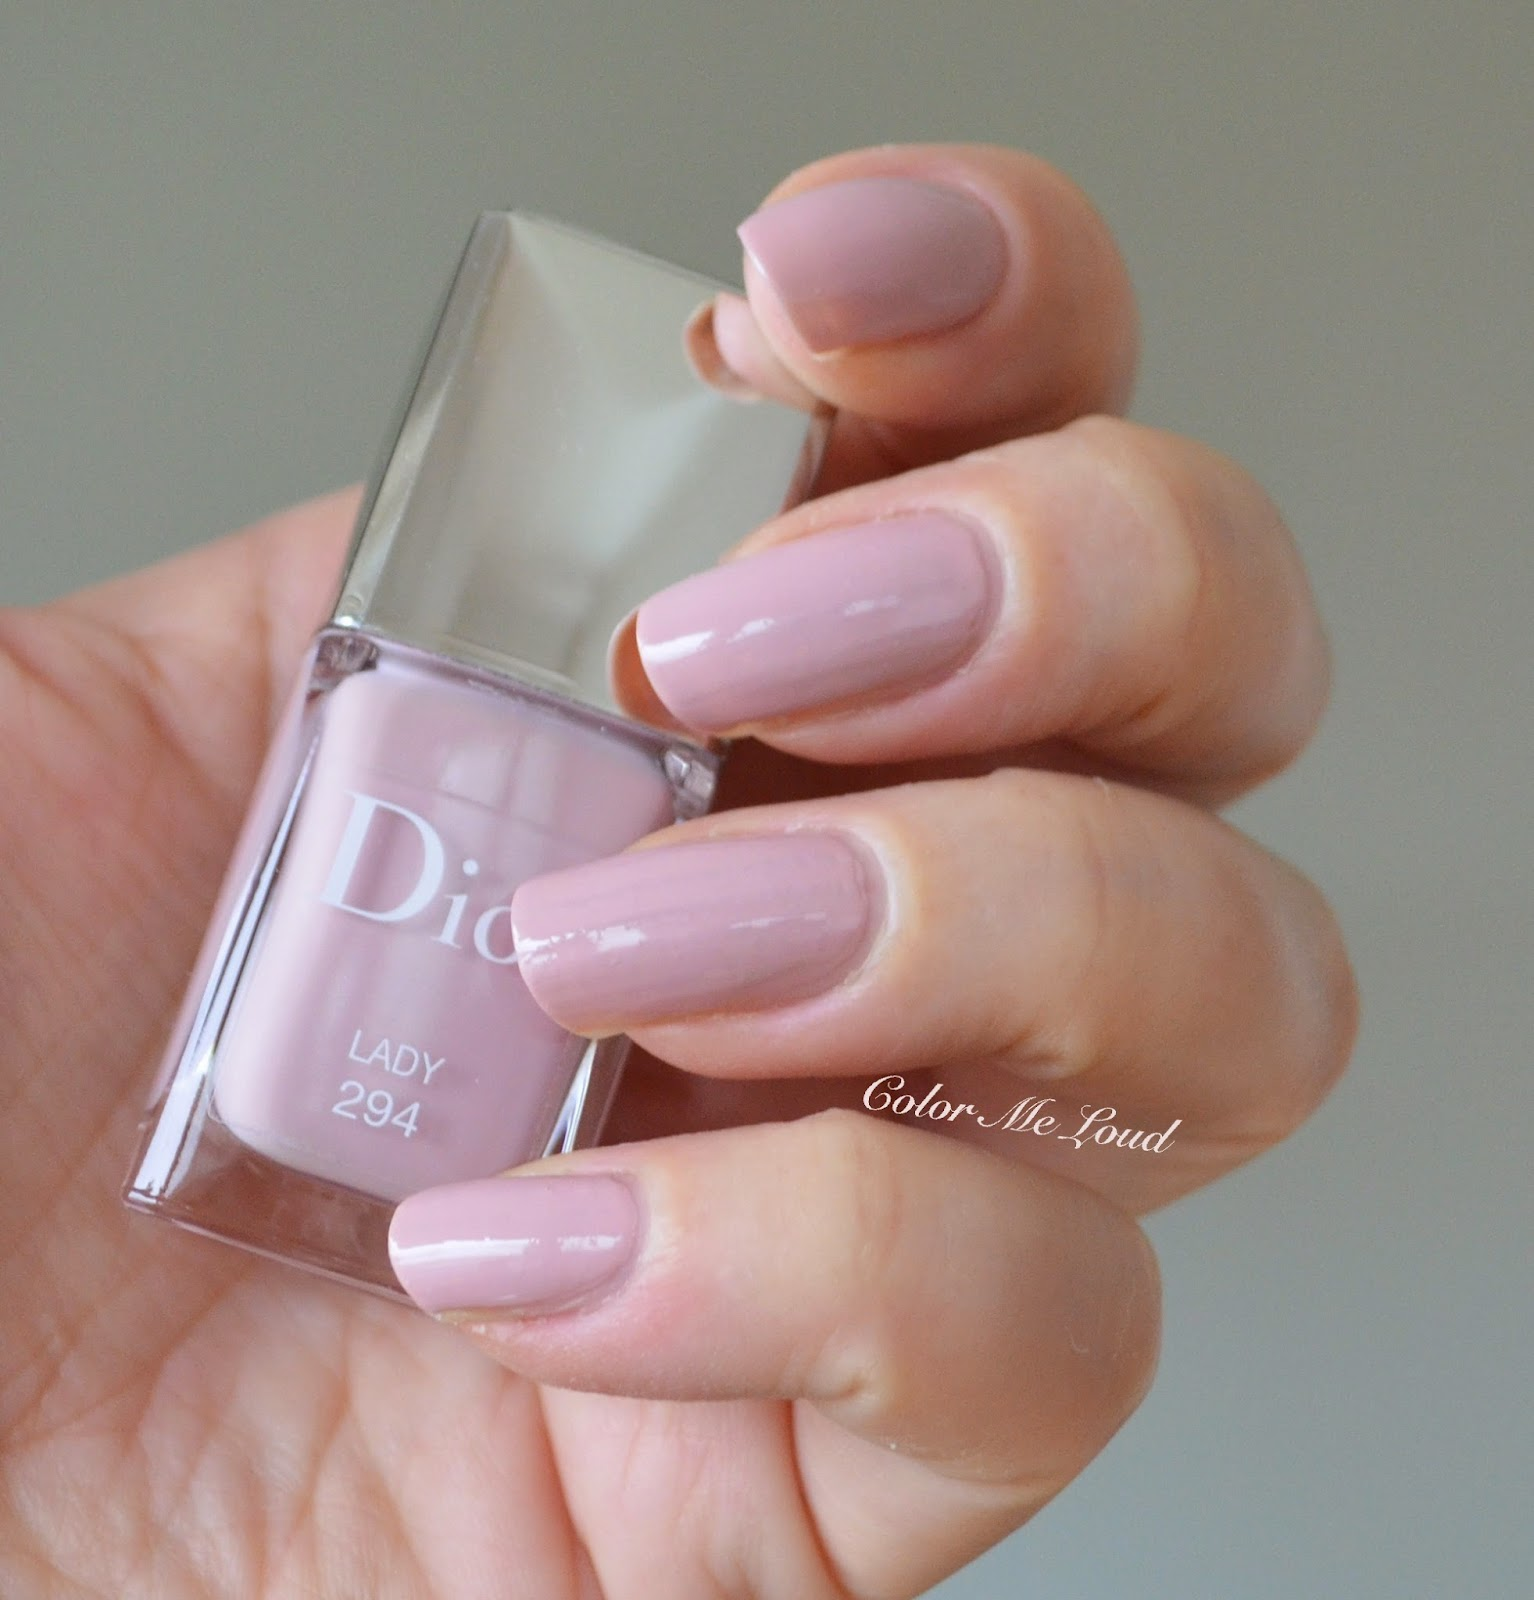 Dior Vernis #294 Lady, #244 Majesty, #660 Glory and Eclosion Top ...